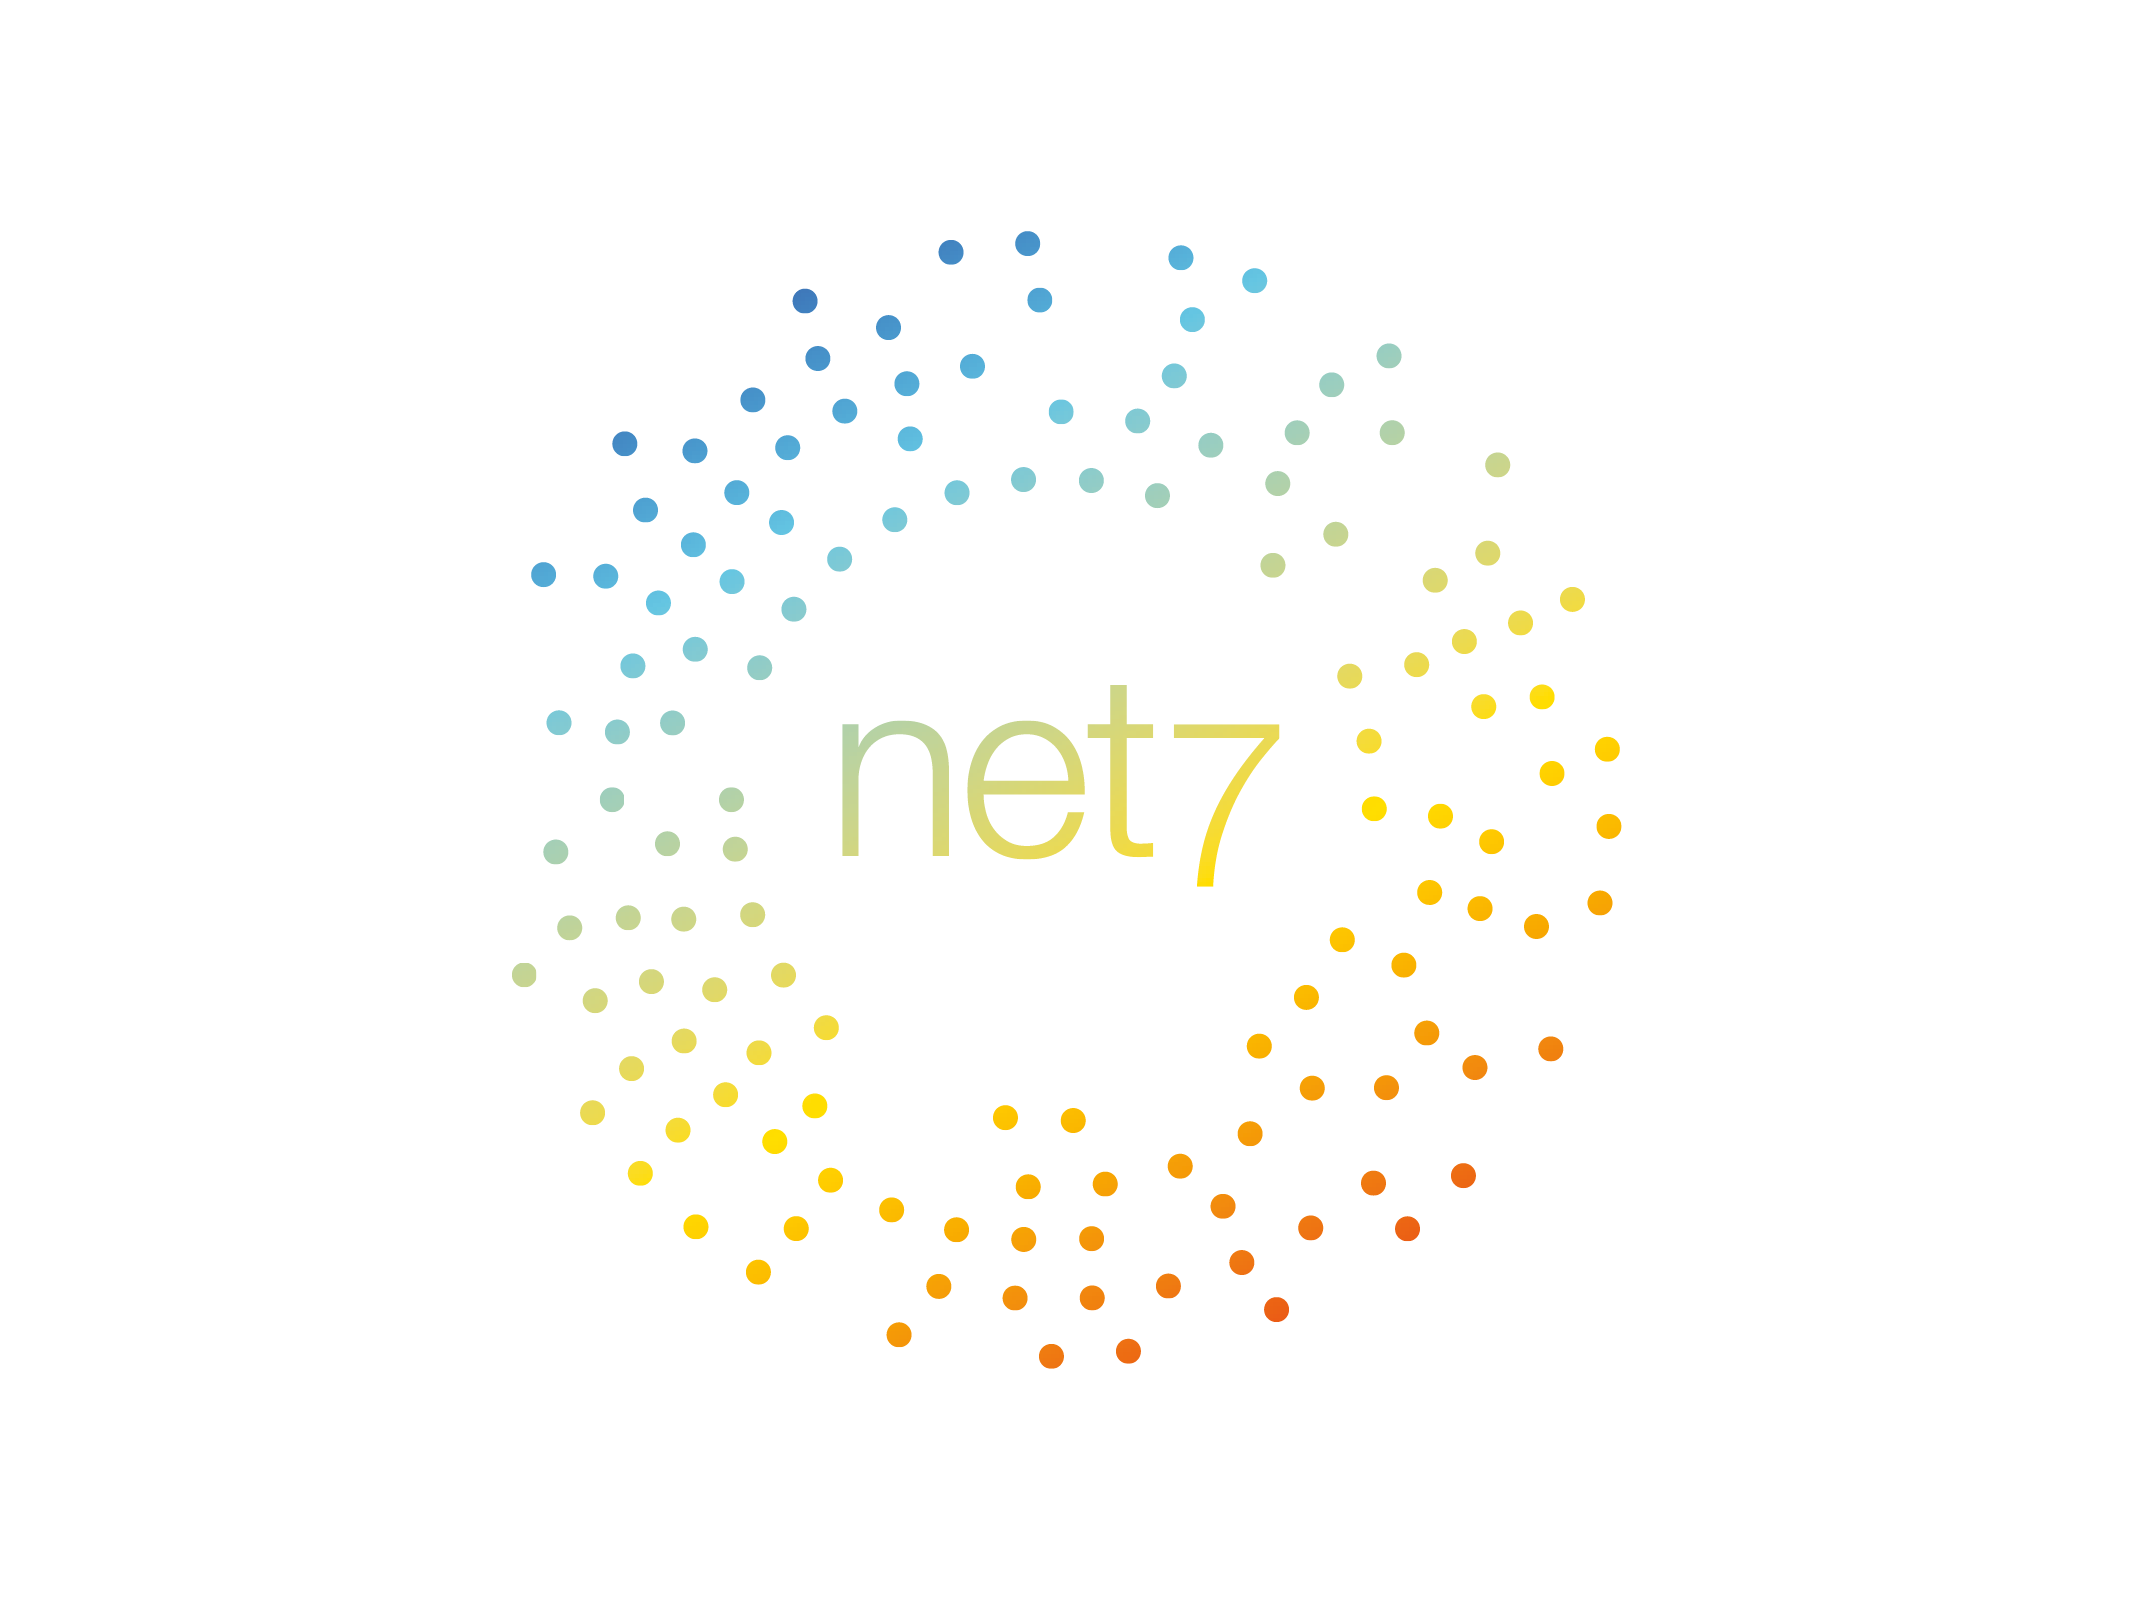 TRIPLE partner logo - Net7